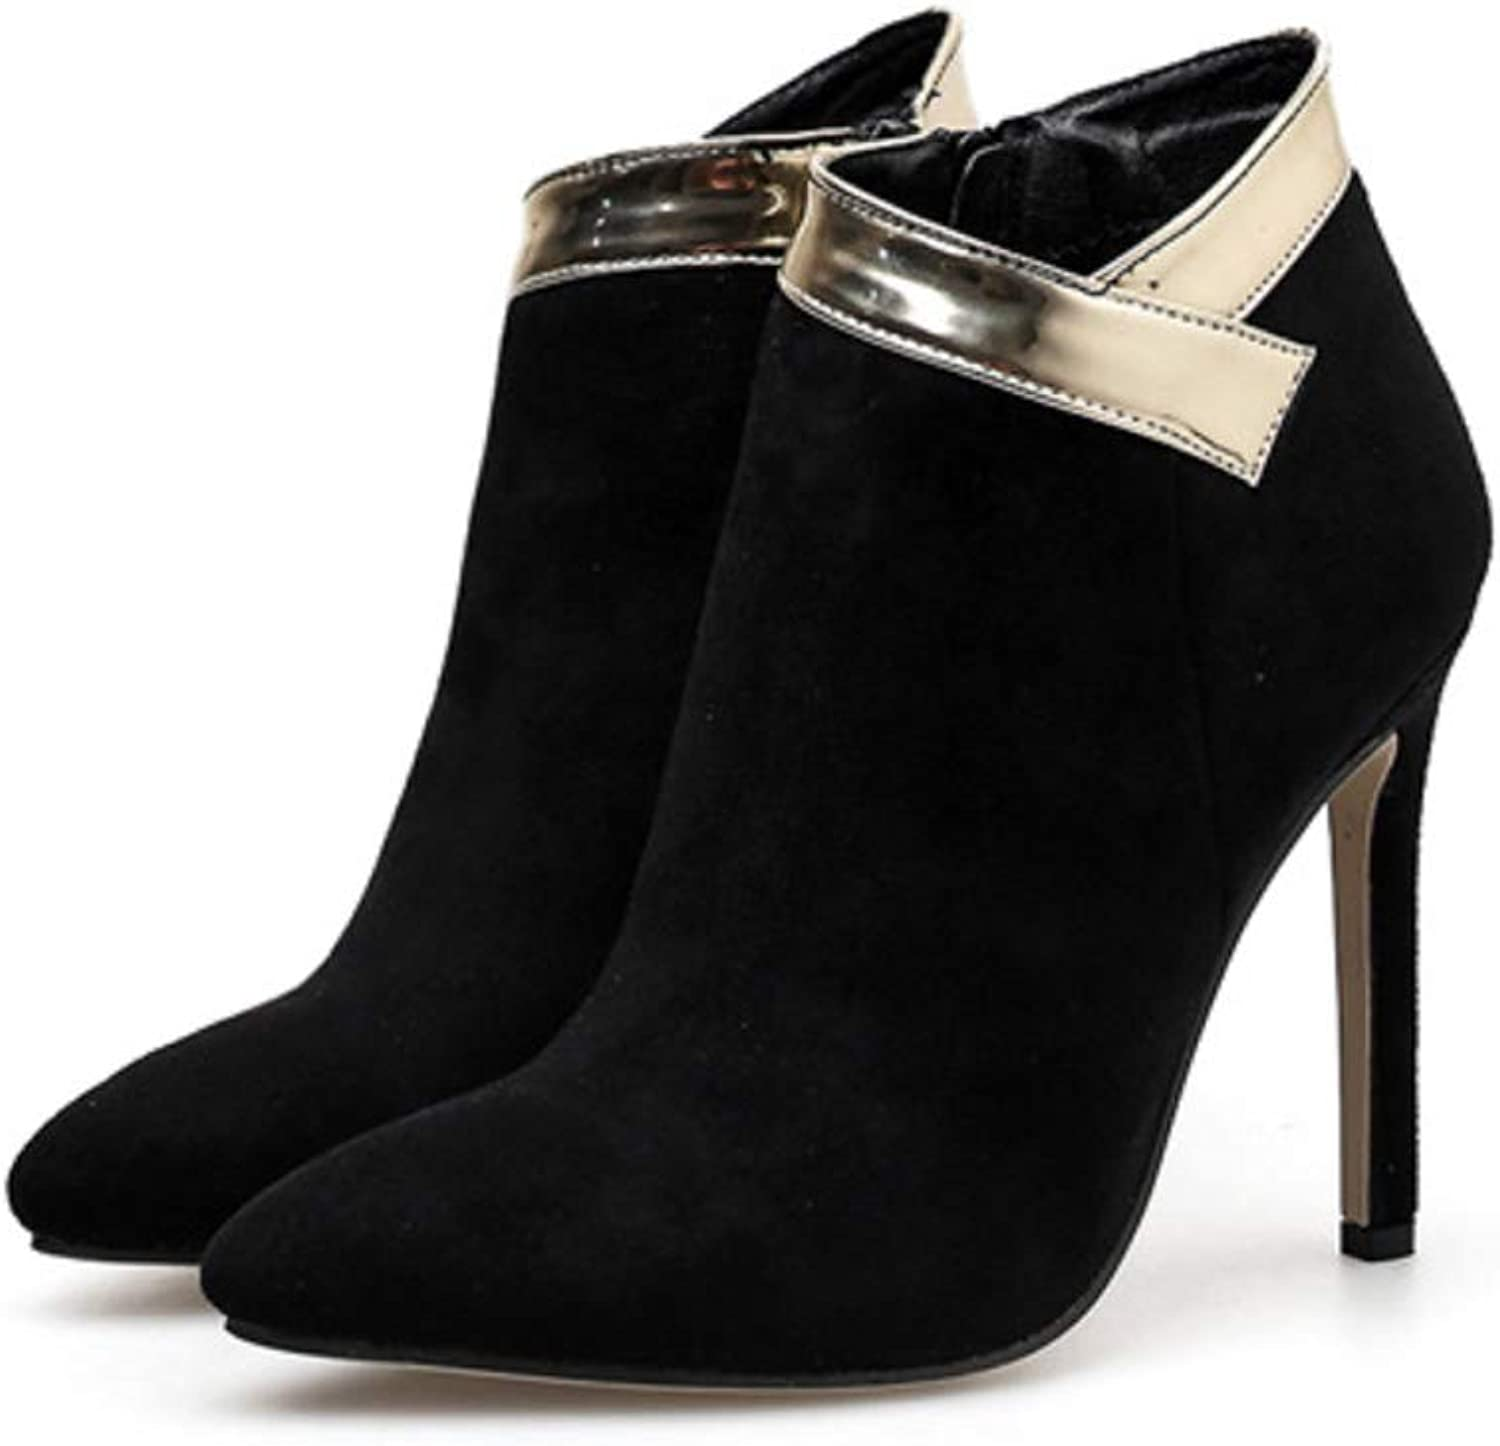 Women's shoes Fashion Ankle Boots Stiletto Heel Pointed Toe Zipper 2018 Fall